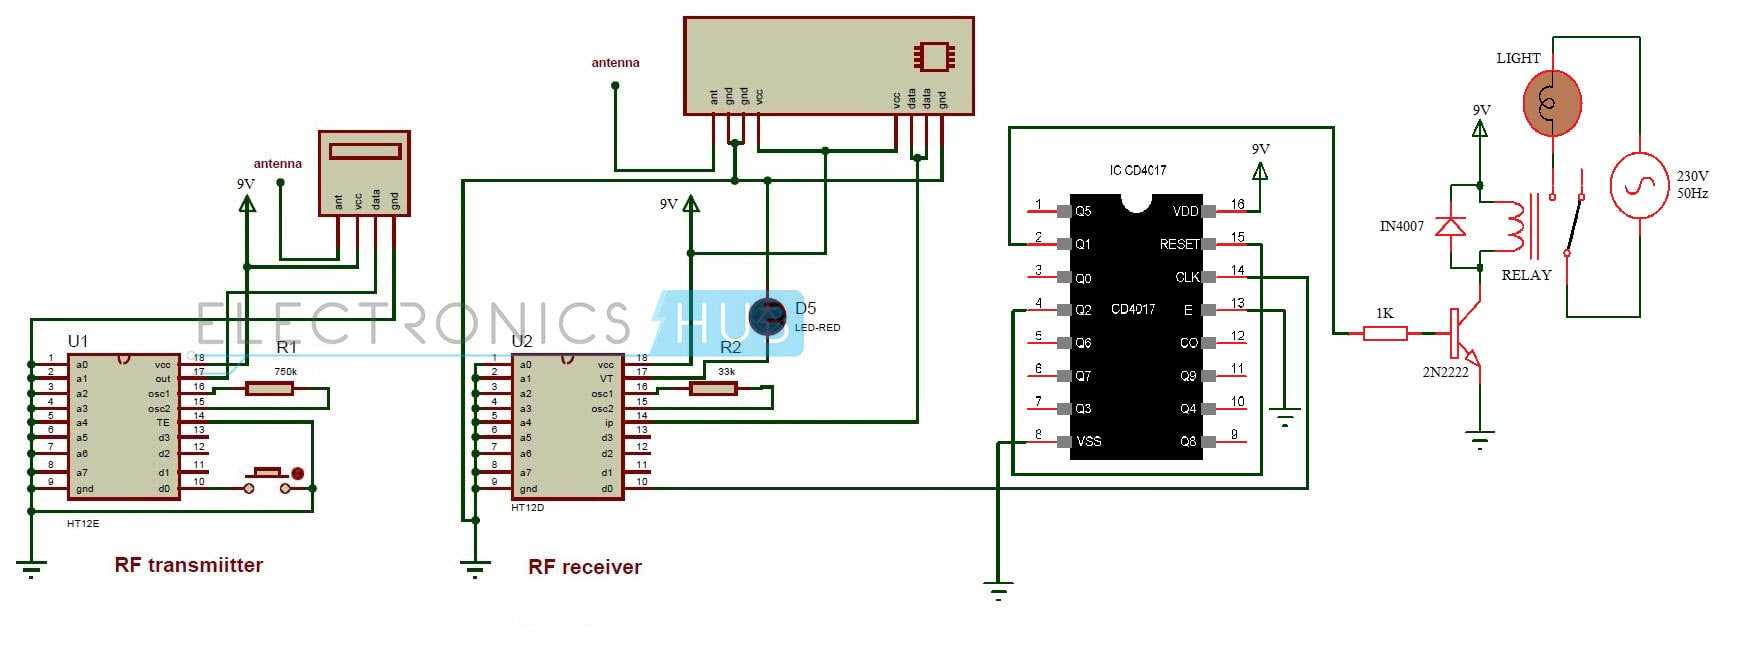 Rf Remote Control Circuit For Home Appliances Without Microcontroller On The Transmitter To Corresponding Receiver Diagram Of Using